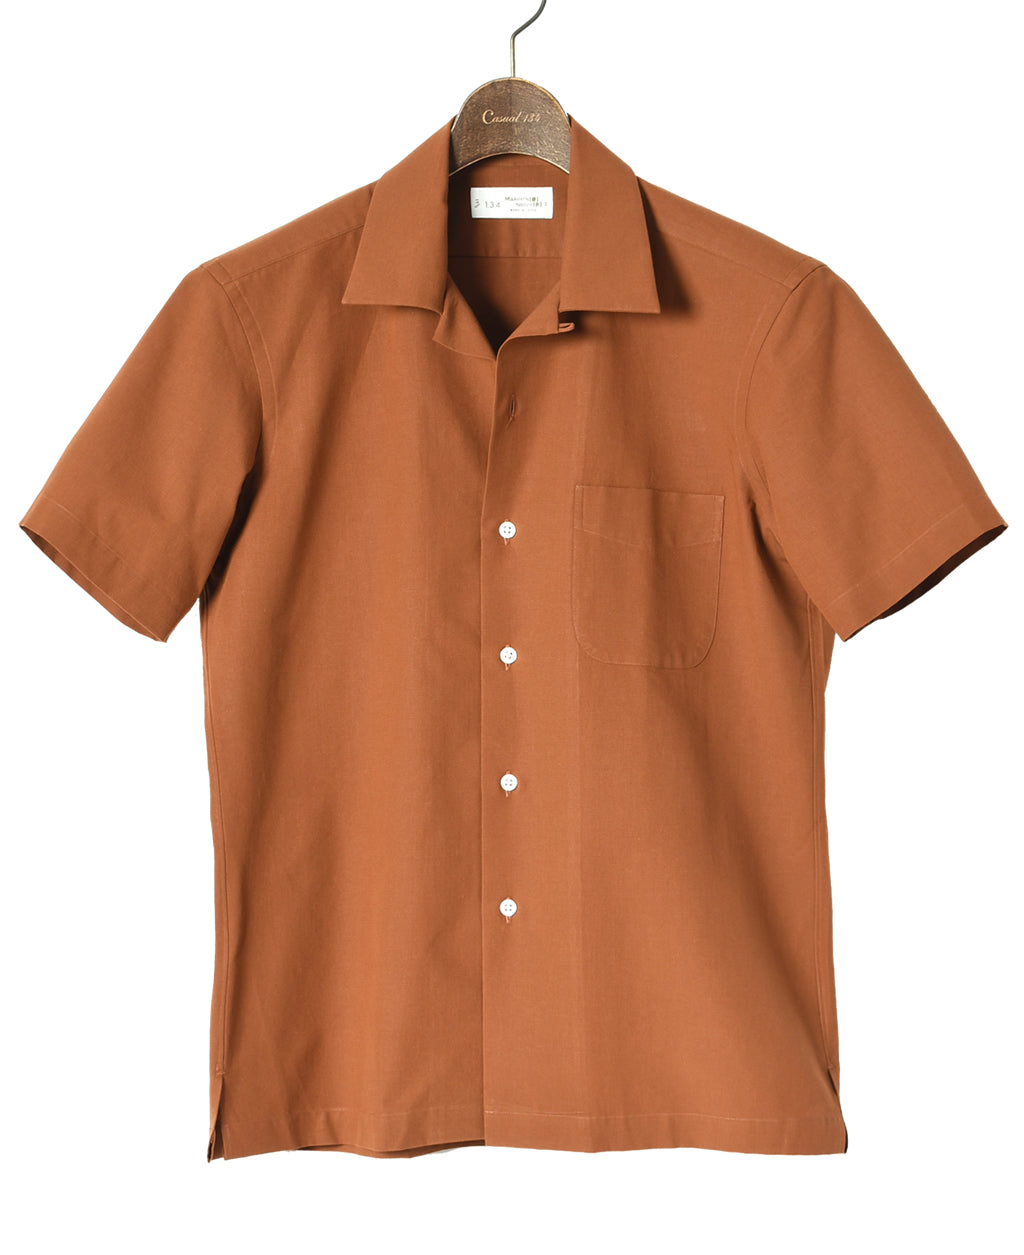 Orange Cotton and paper short sleeve shirt